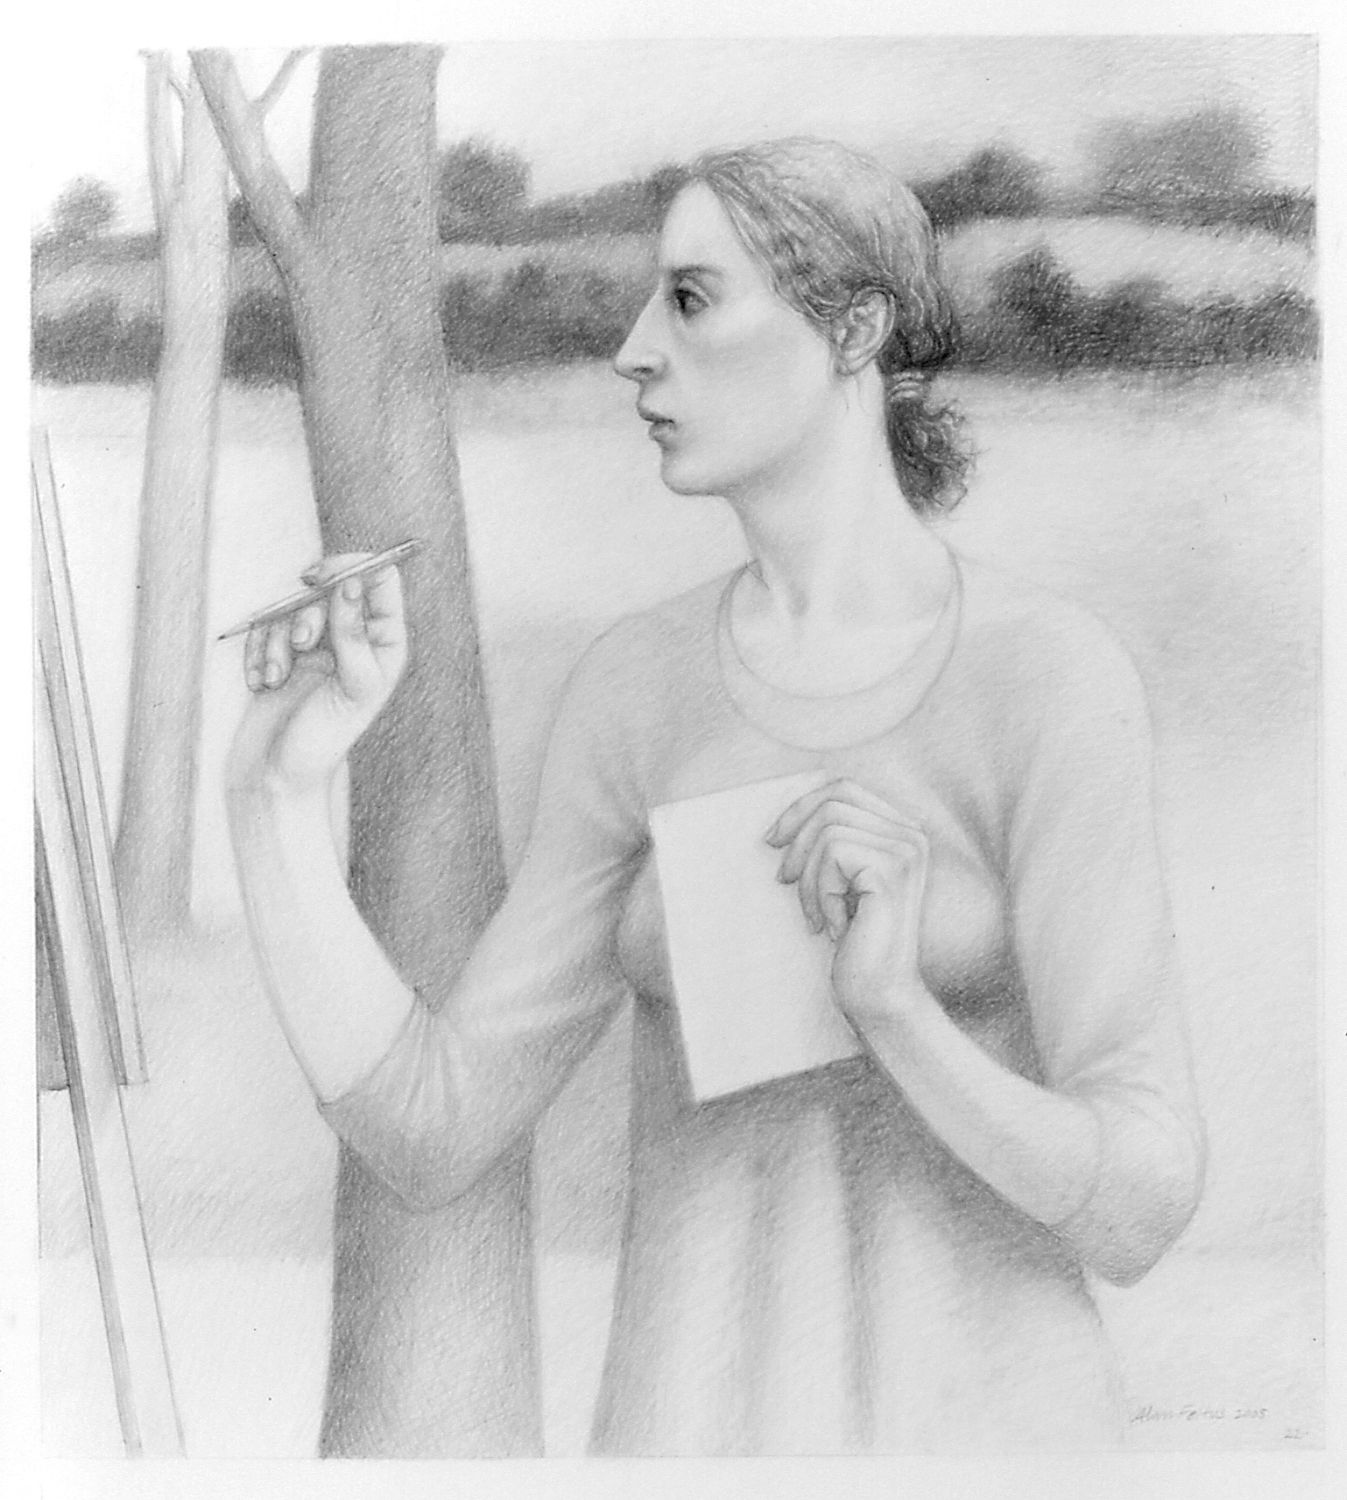 Alan Feltus, Writer in the Trées, 2004, pencil on Strathmore paper, 20 x 18 inches